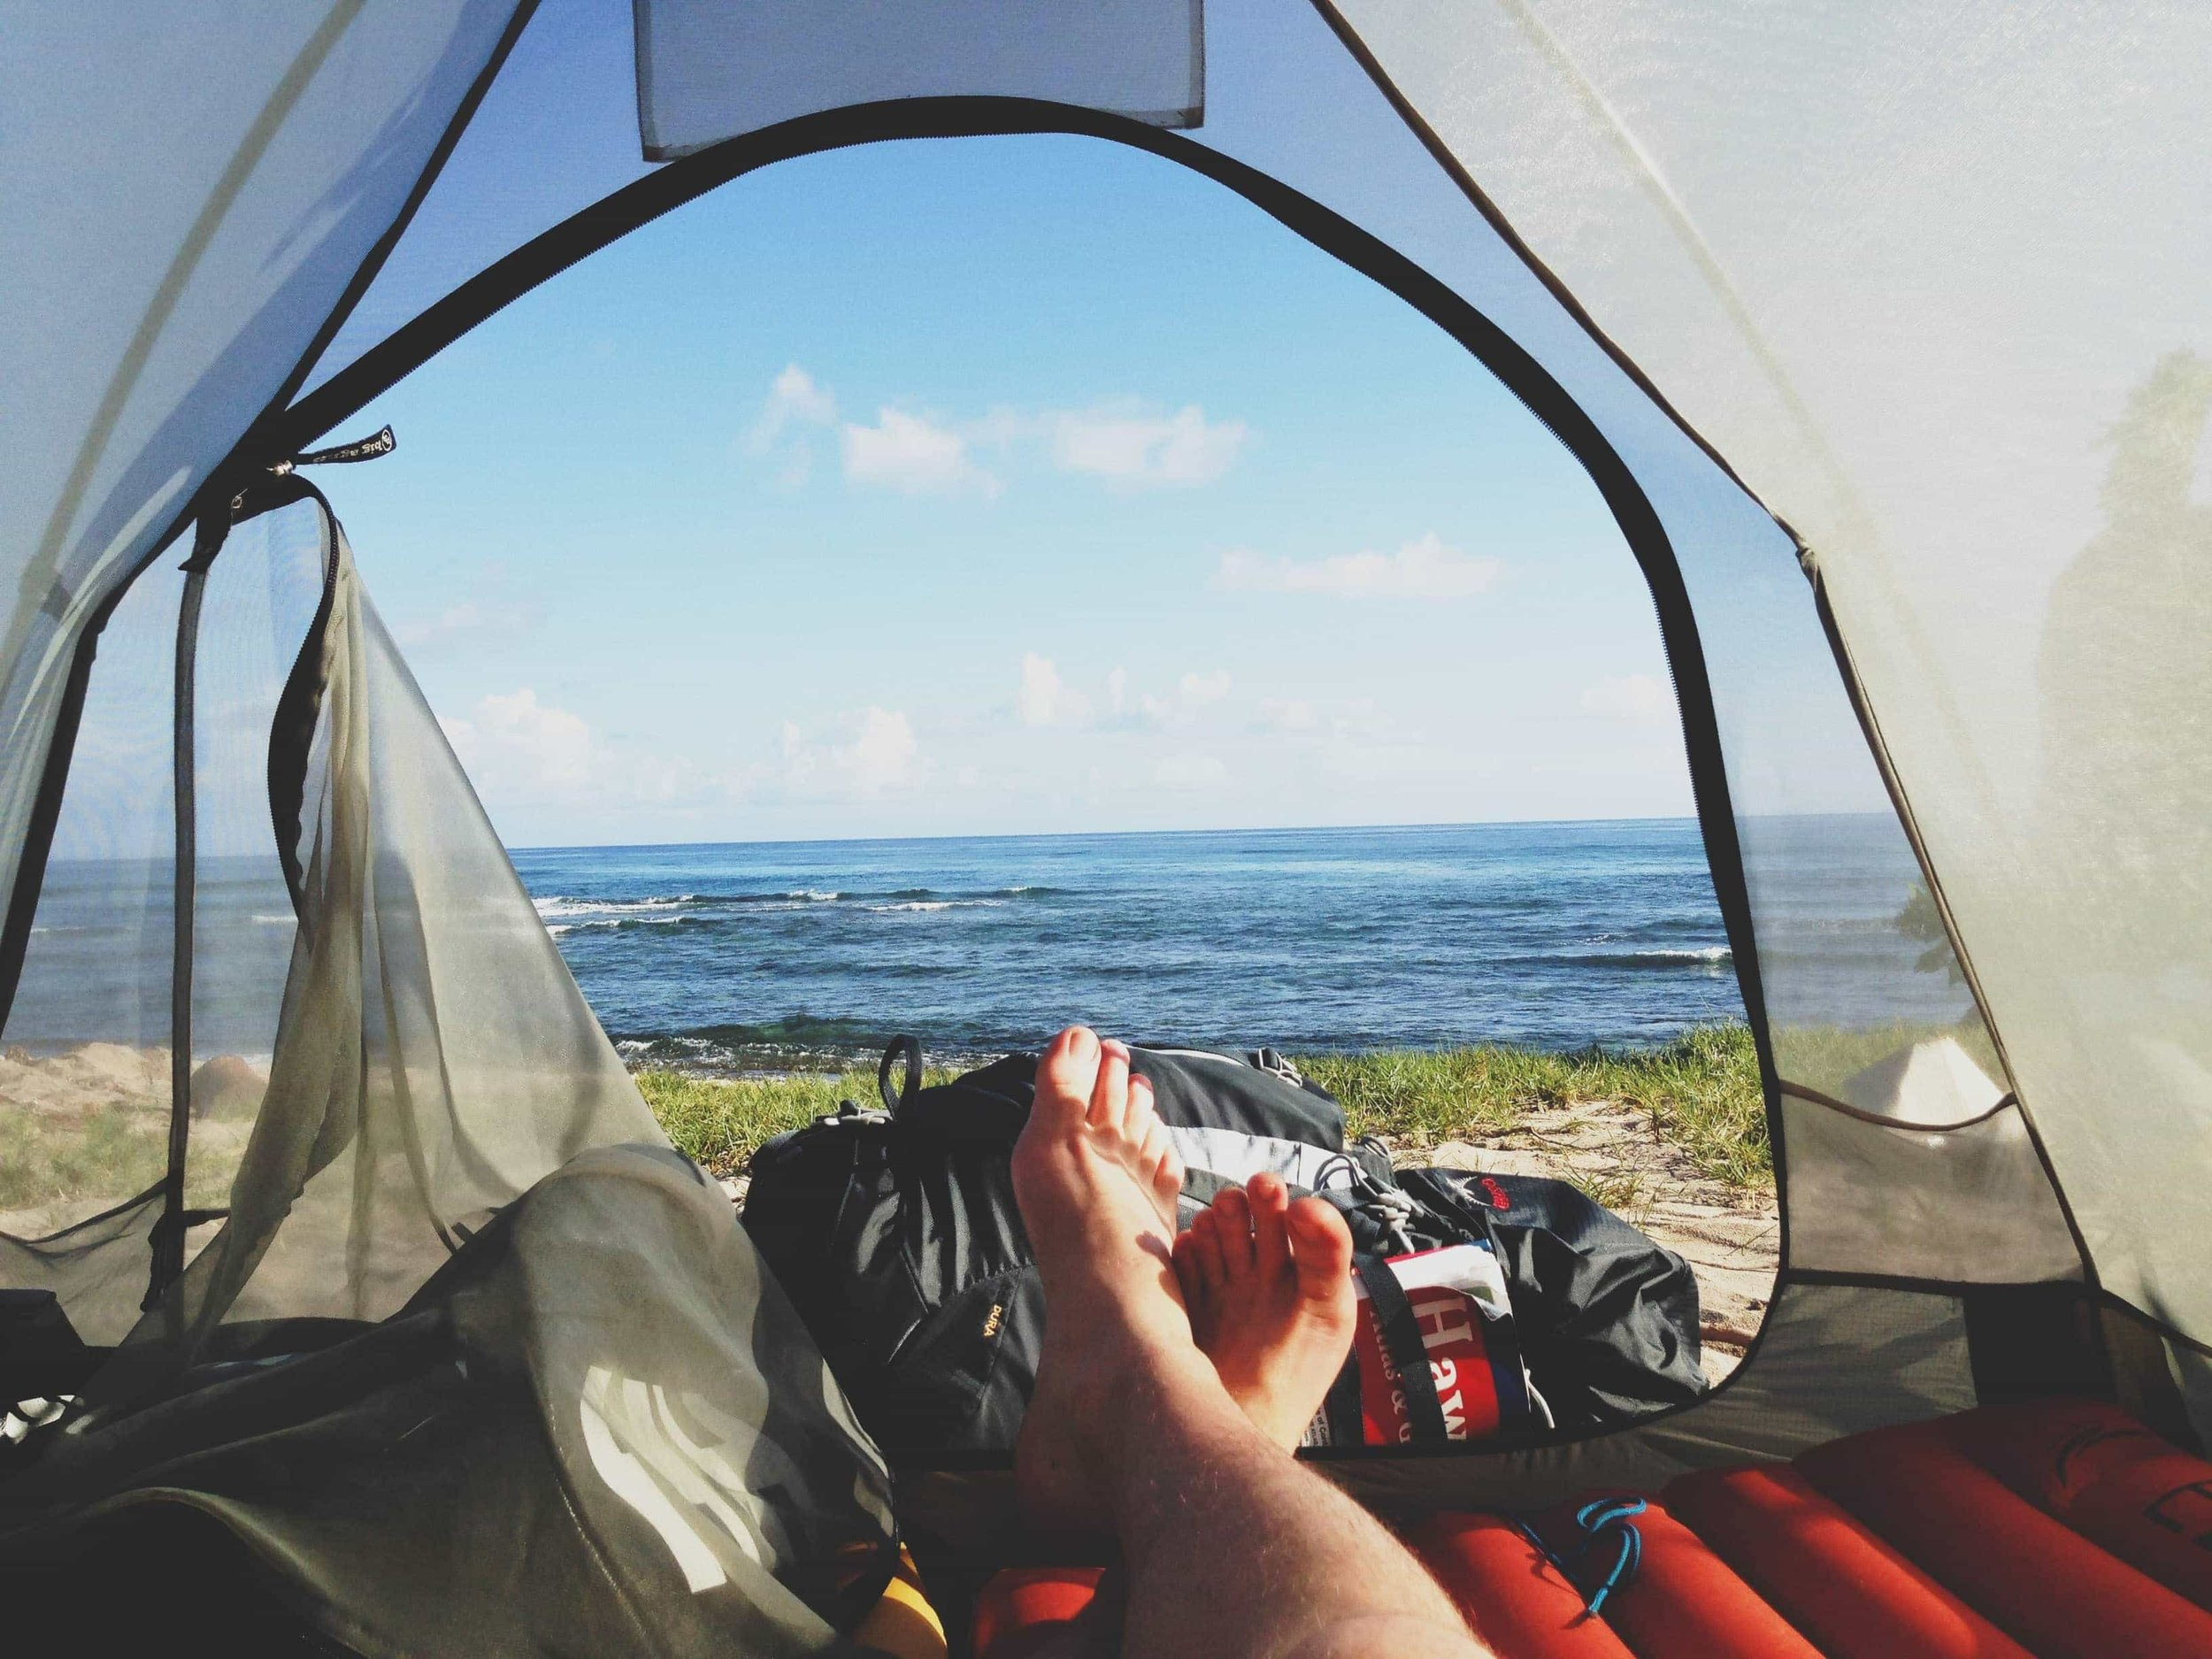 The best camping air mattress makes all the difference